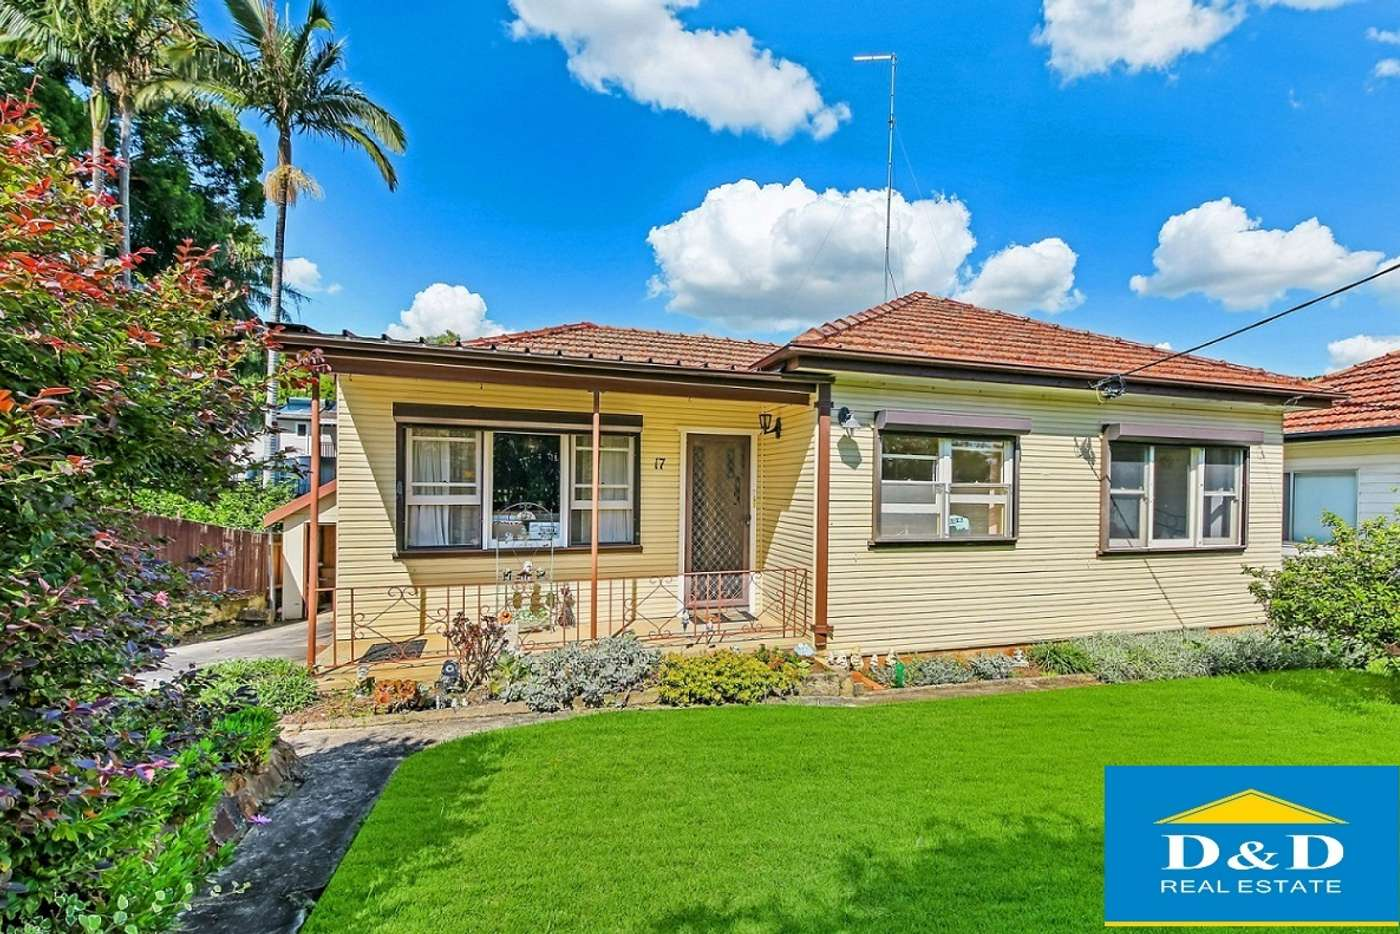 Main view of Homely house listing, 17 Ferris Street, North Parramatta NSW 2151